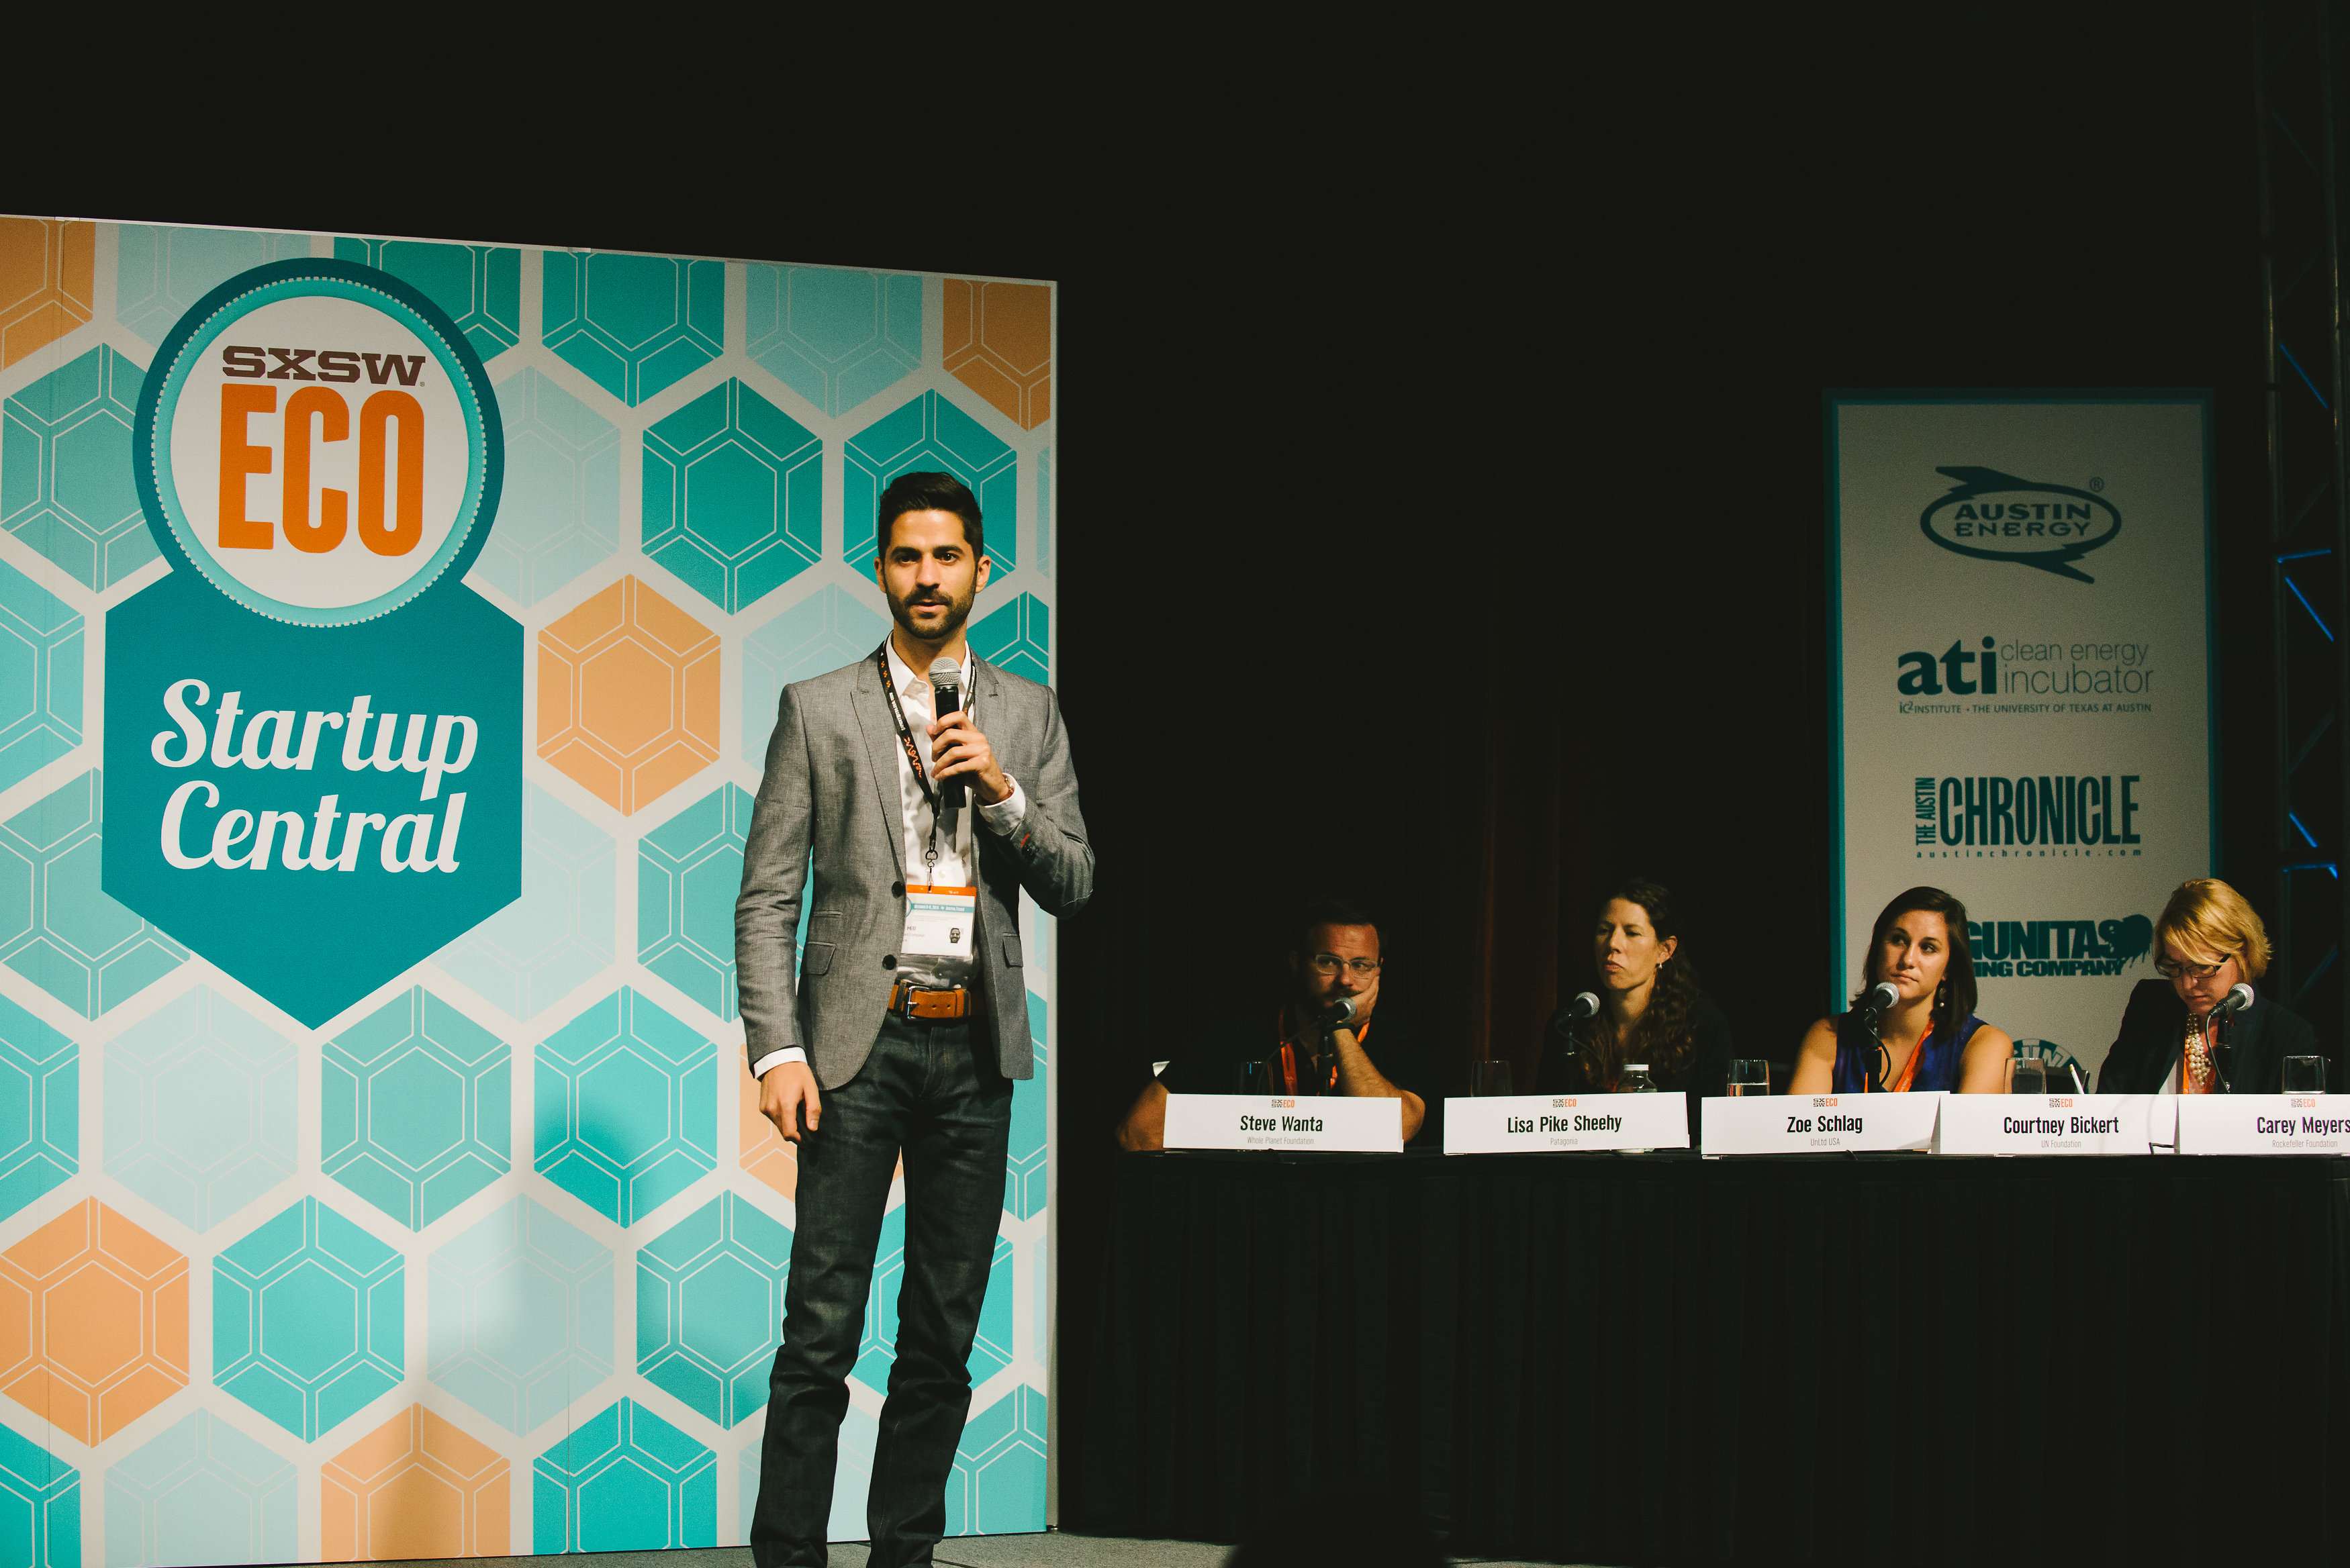 GIC at SXSW Eco's 2014 Startup Showcase